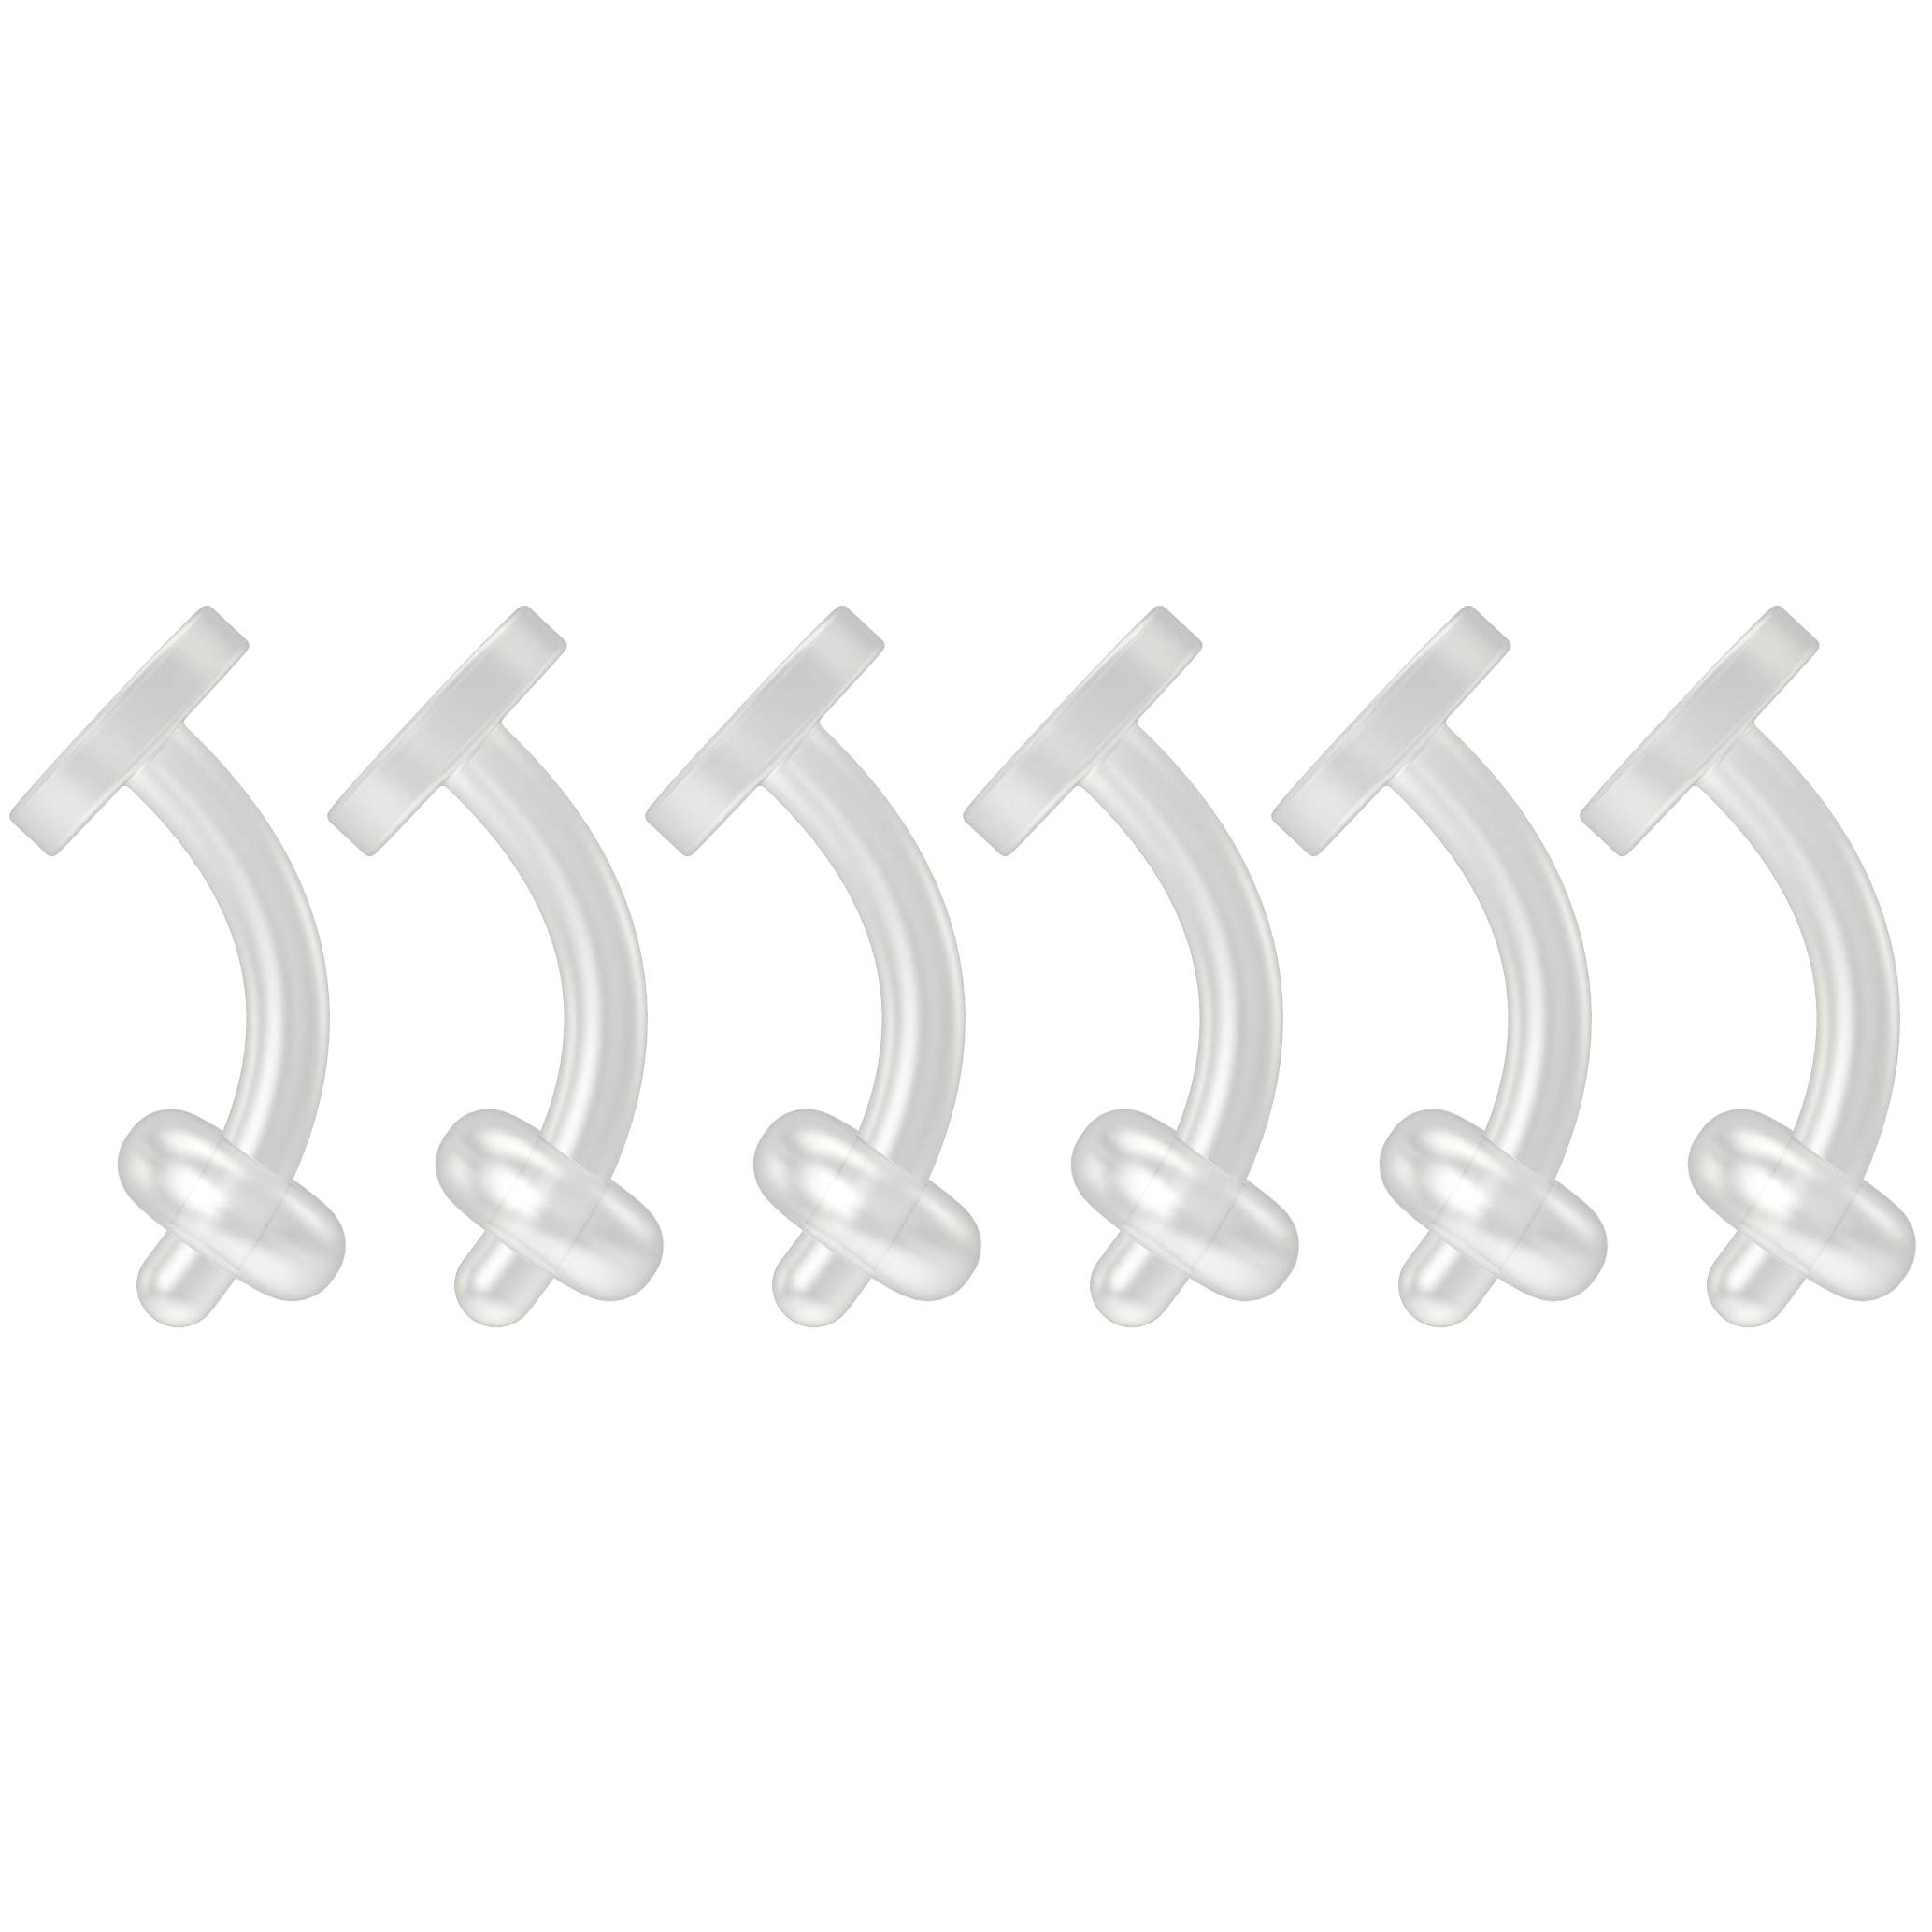 6pc 16g Cartilage Piercing Retainer Flexible Clear BioFlex Curved Barbell Bioplast Piercing 6mm 1/4 by Bling Piercing